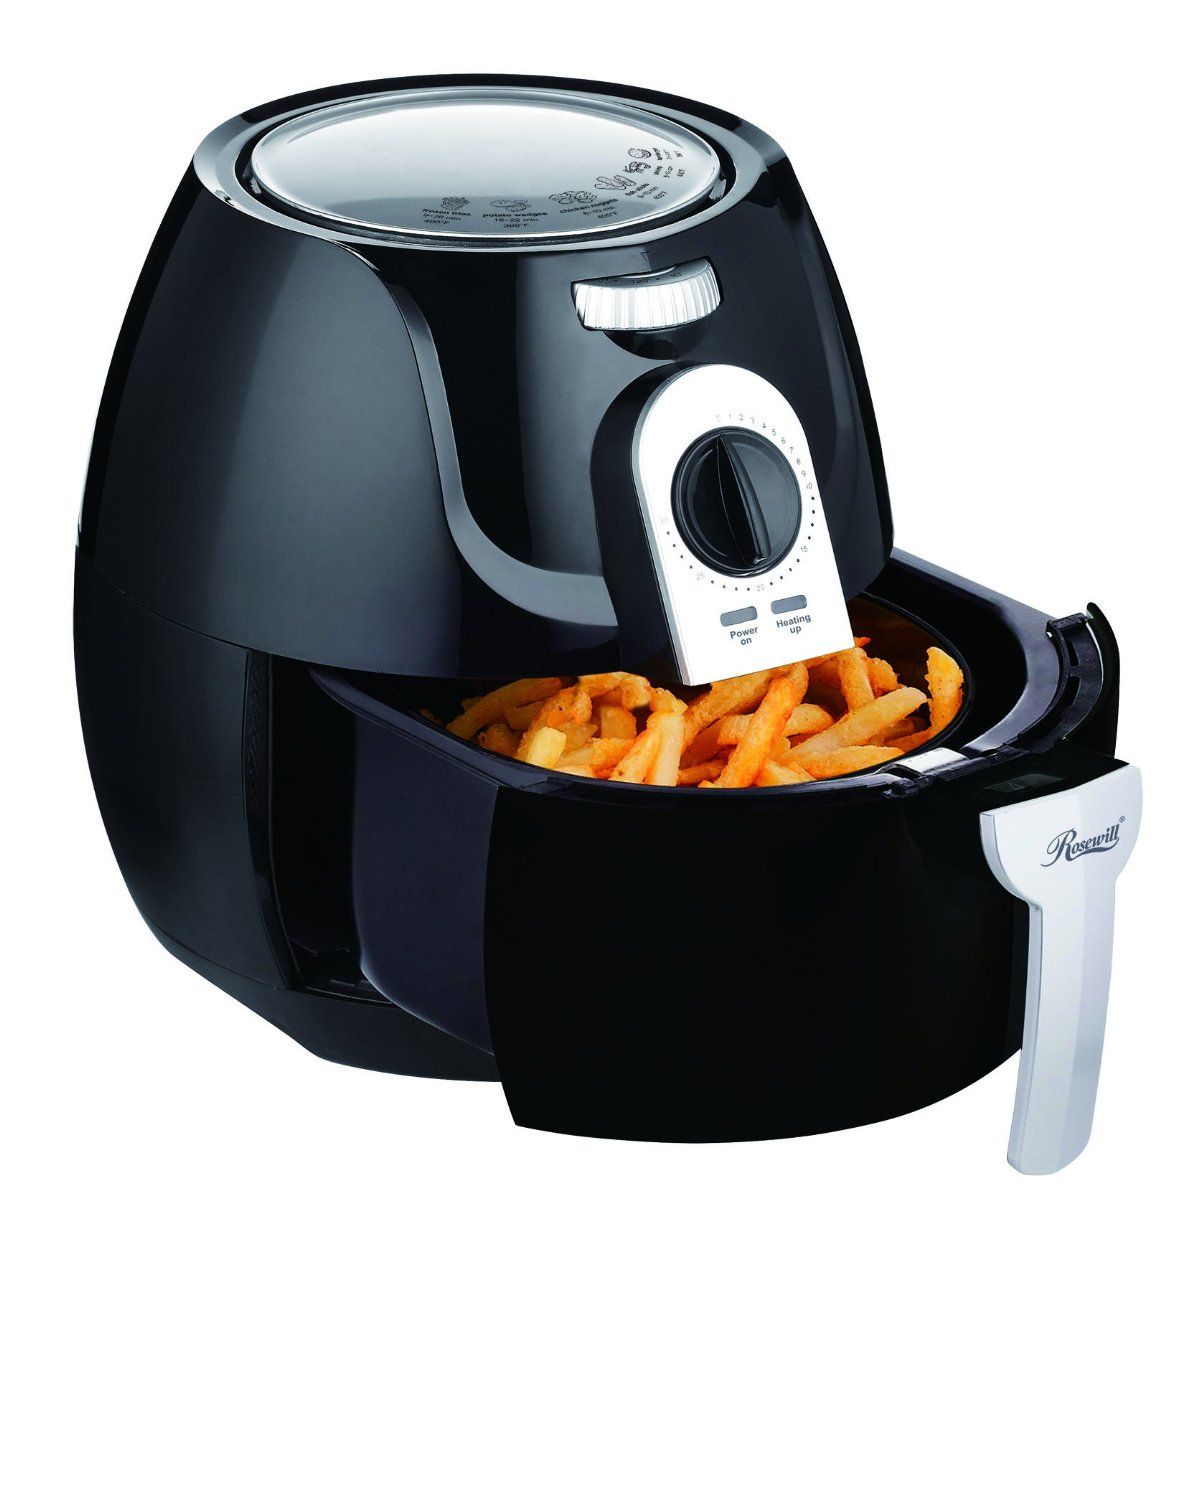 rosewill rhaf 15004 multifunction electric air fryer review. Black Bedroom Furniture Sets. Home Design Ideas